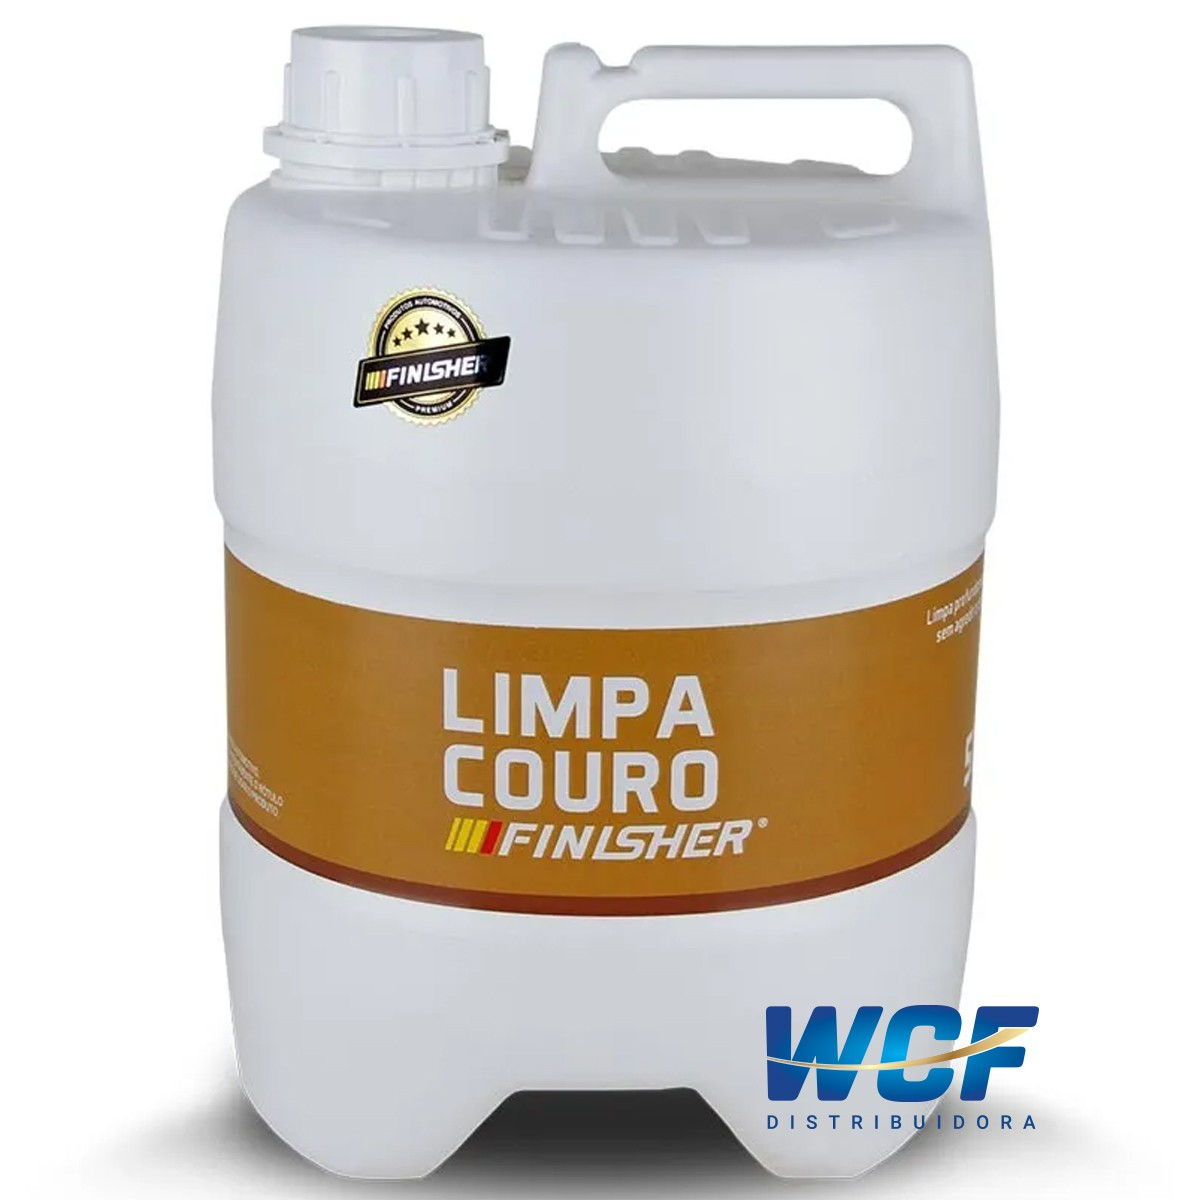 LIMPA COURO 5 L FINISHER